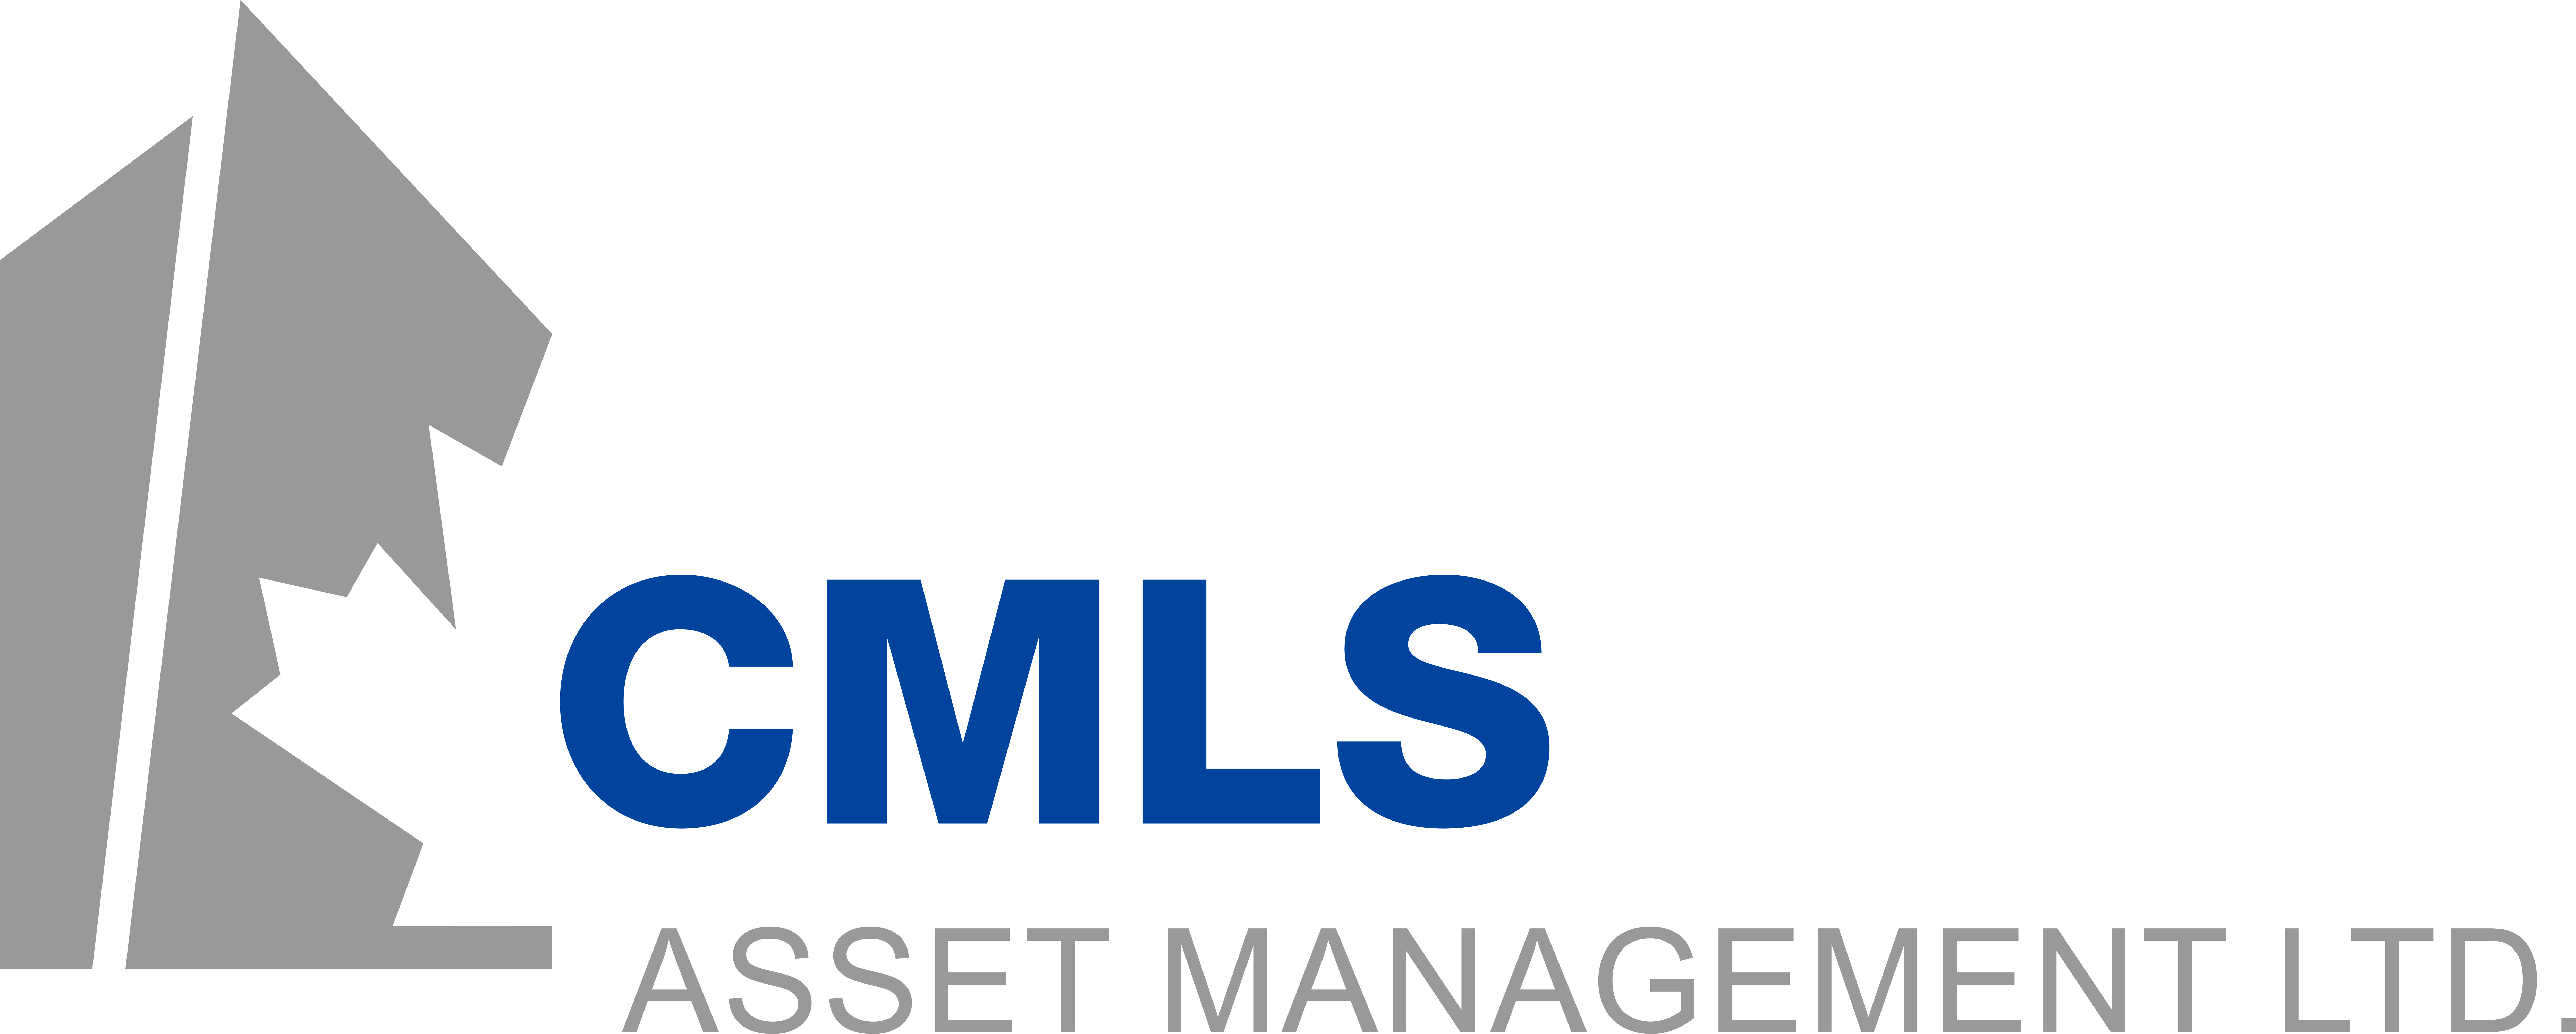 CMLS logo with Asset Management tag (003).jpg